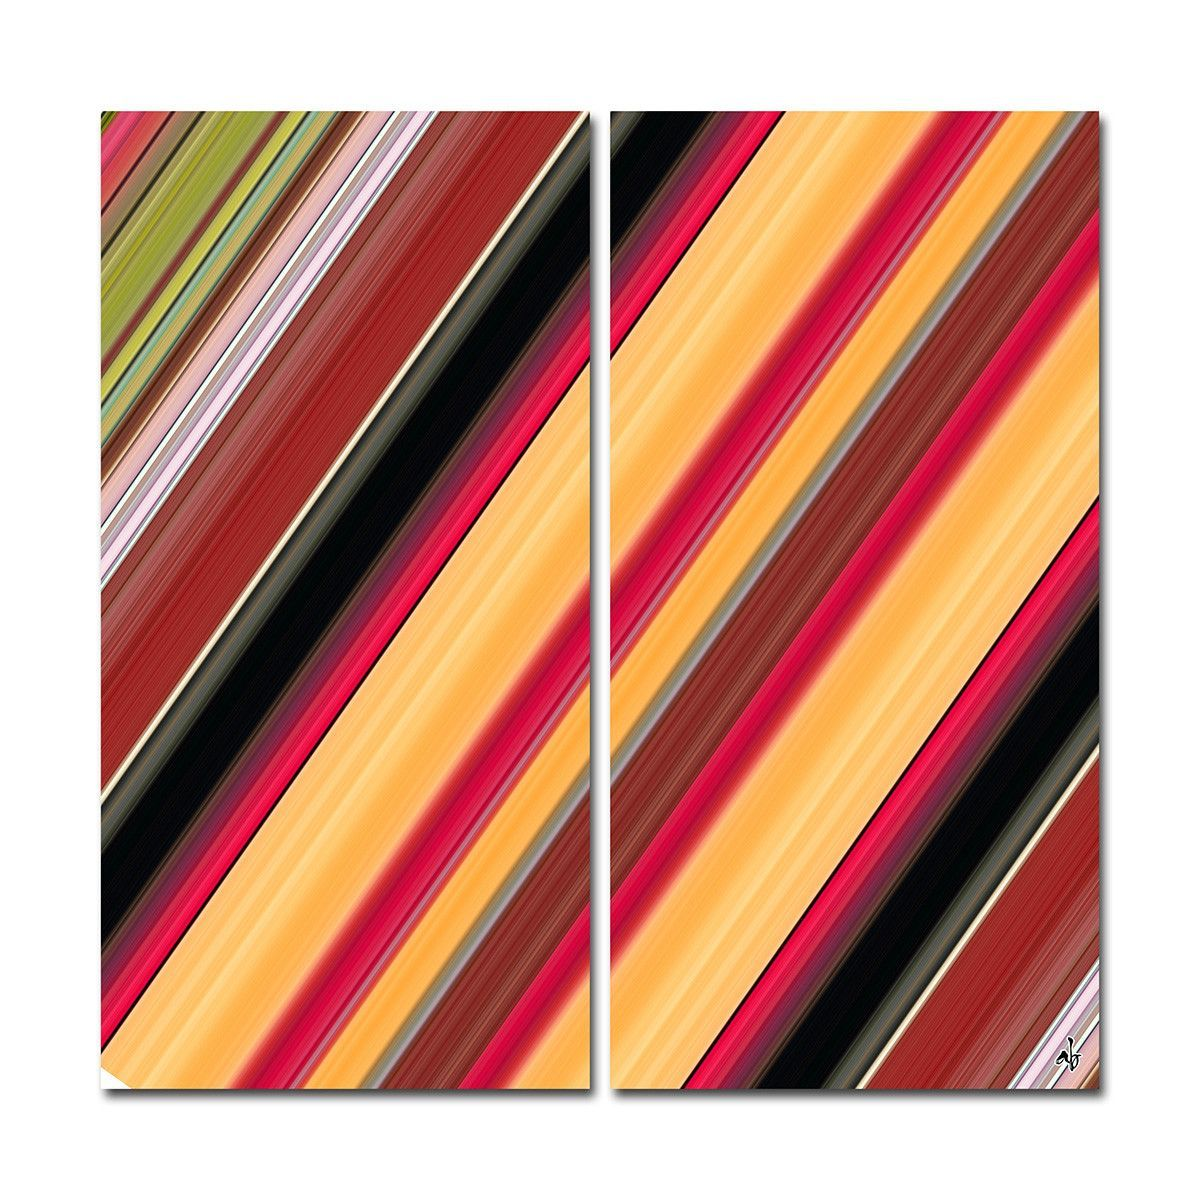 'Geometric Study VIII' by Alexis Bueno 2 Piece Graphic Art on Wrapped Canvas Set